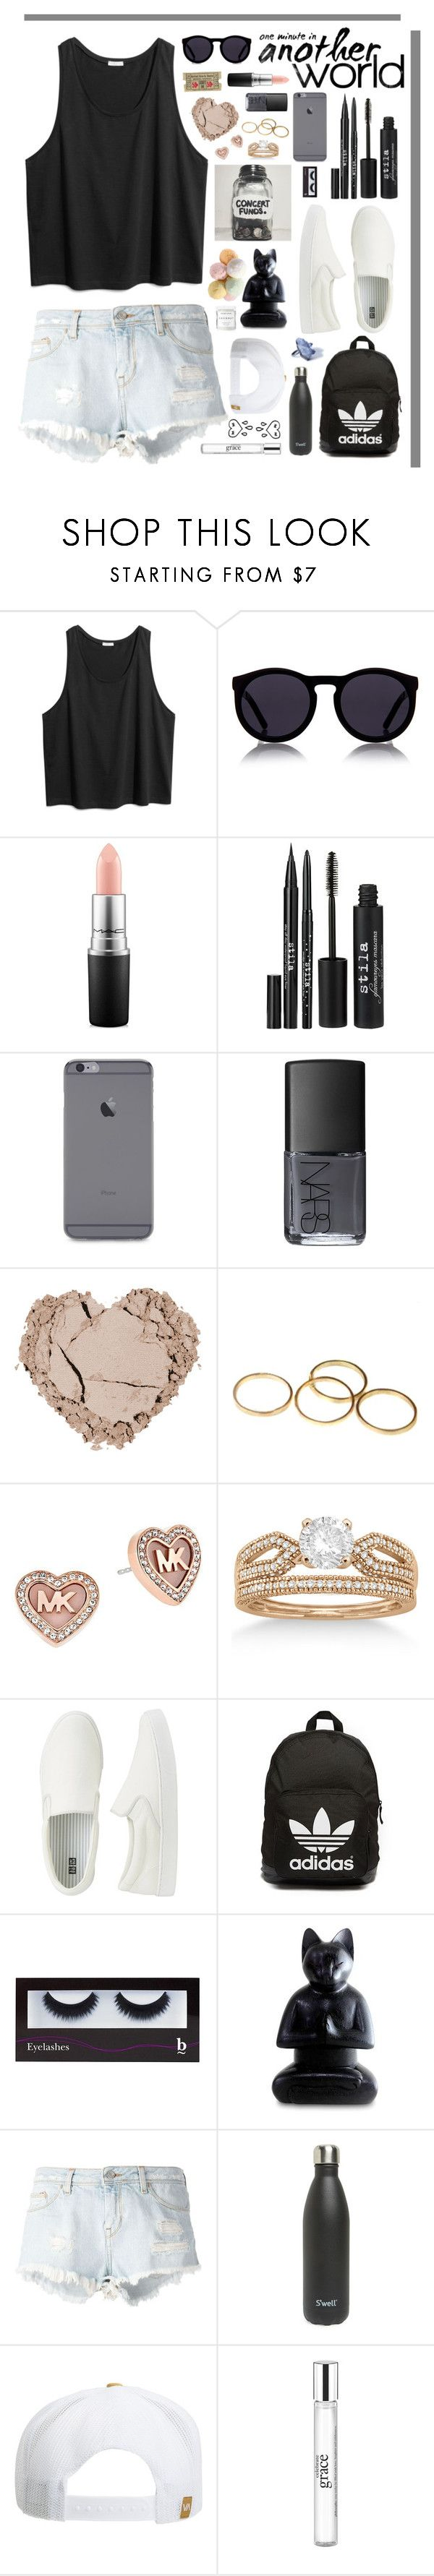 """ summer vibes "" by mrs-nick-robinson ❤ liked on Polyvore featuring Le Specs, MAC Cosmetics, Stila, NARS Cosmetics, MICHAEL Michael Kors, Allurez, Uniqlo, adidas Originals, BBrowBar and NOVICA"